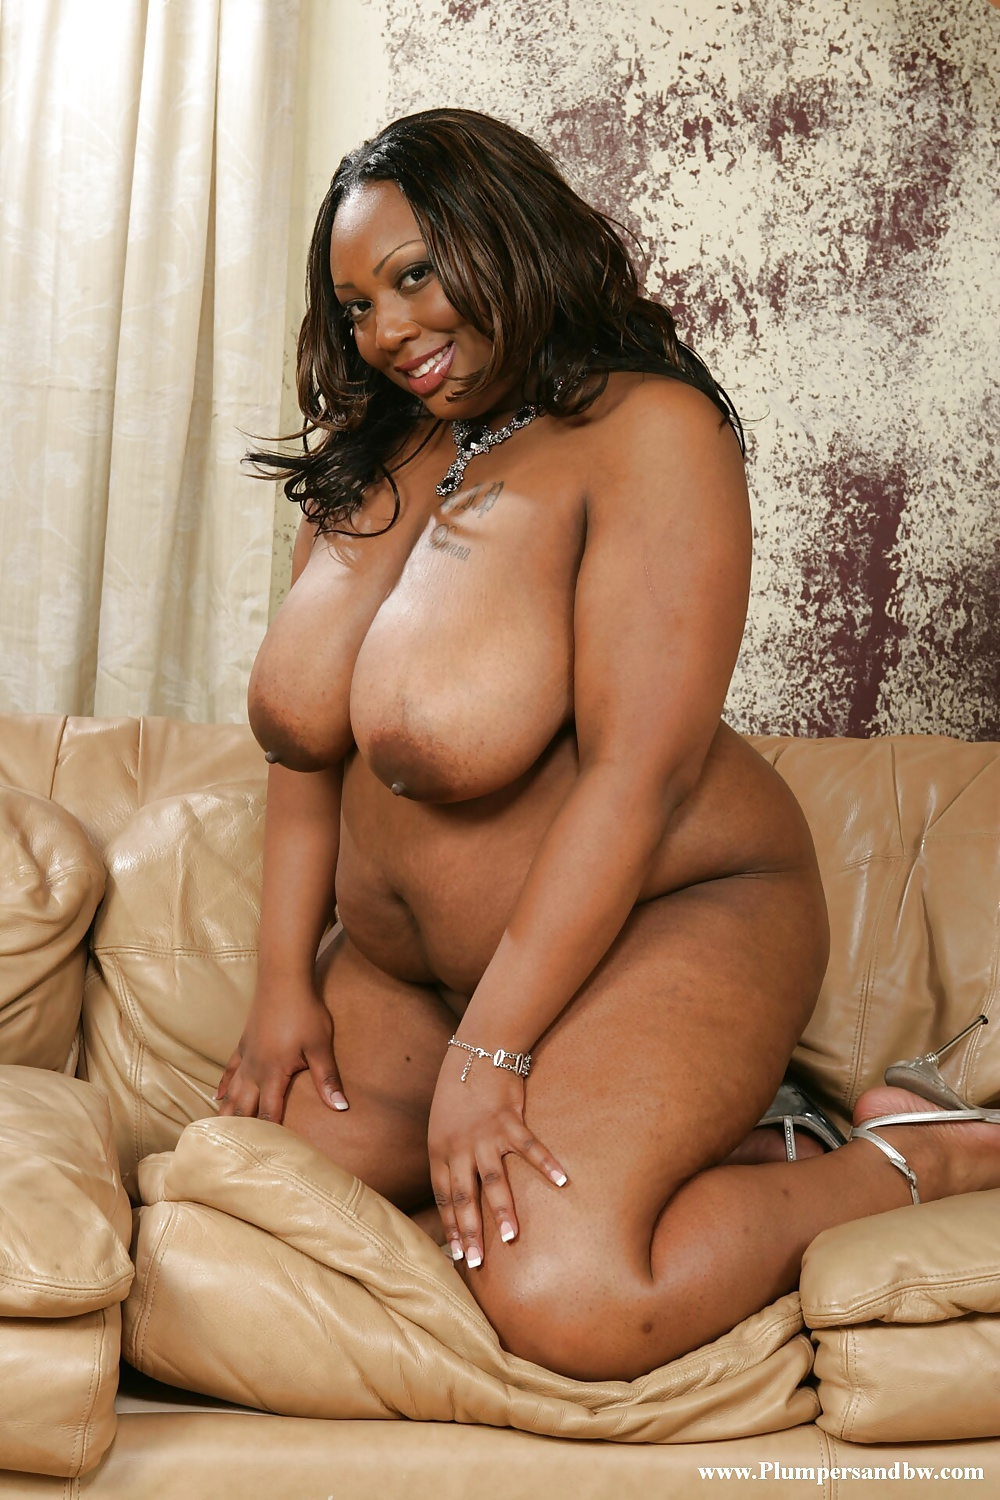 Girl ebony fat sexy women nude woman dvd